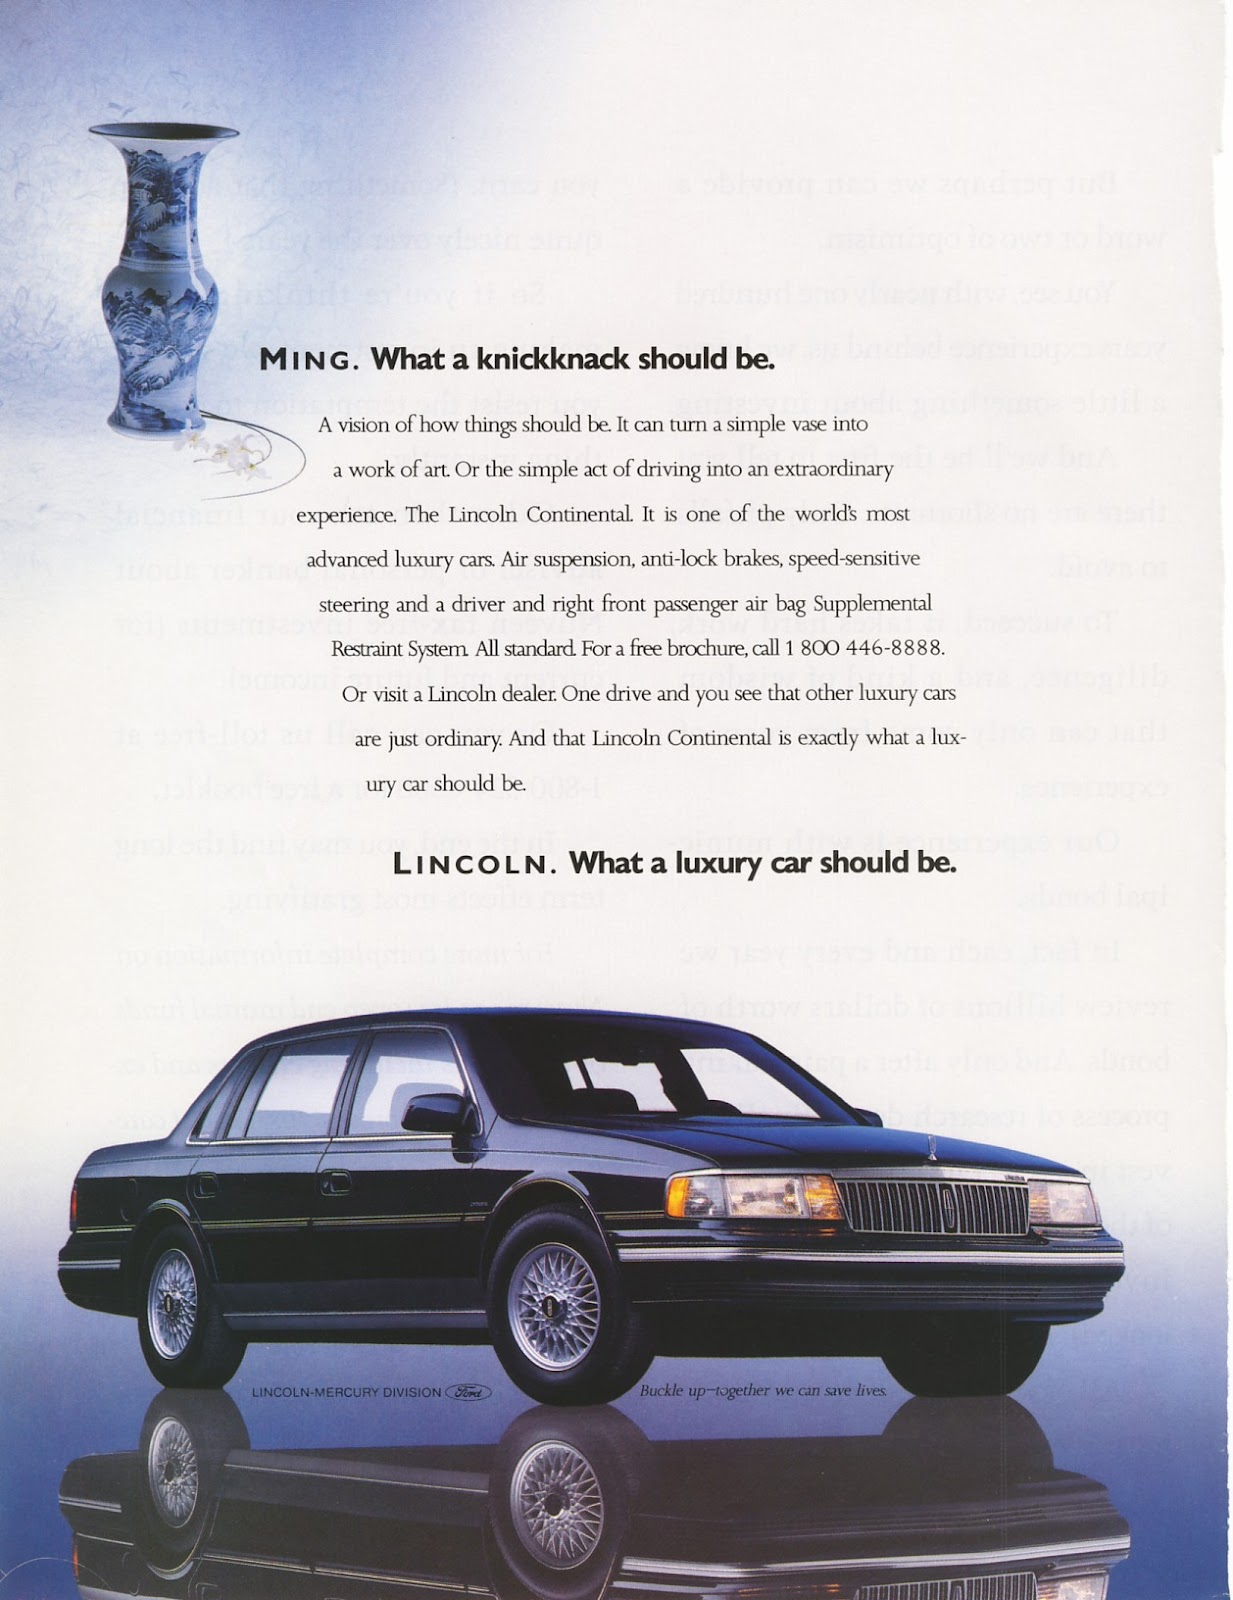 1990 lincoln continental ad ford old magazine ads. Black Bedroom Furniture Sets. Home Design Ideas